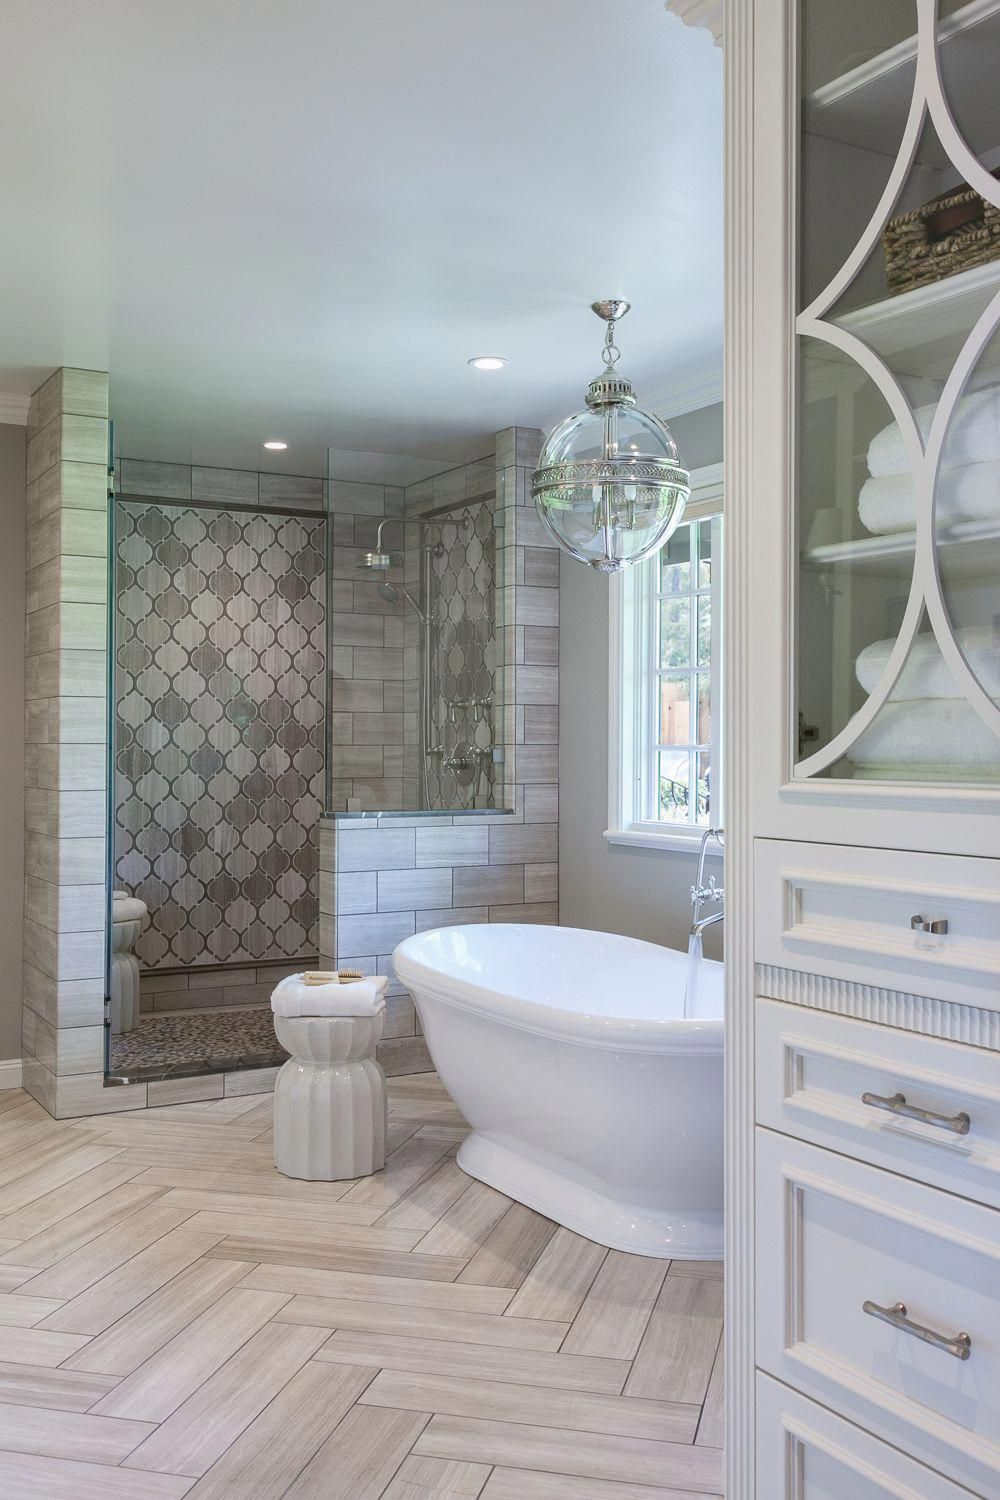 Luxury Bathroom Master Baths Wet Rooms Is Utterly Important For Your Home Whether You Bathroom Remodel Master Farmhouse Master Bathroom Small Master Bathroom